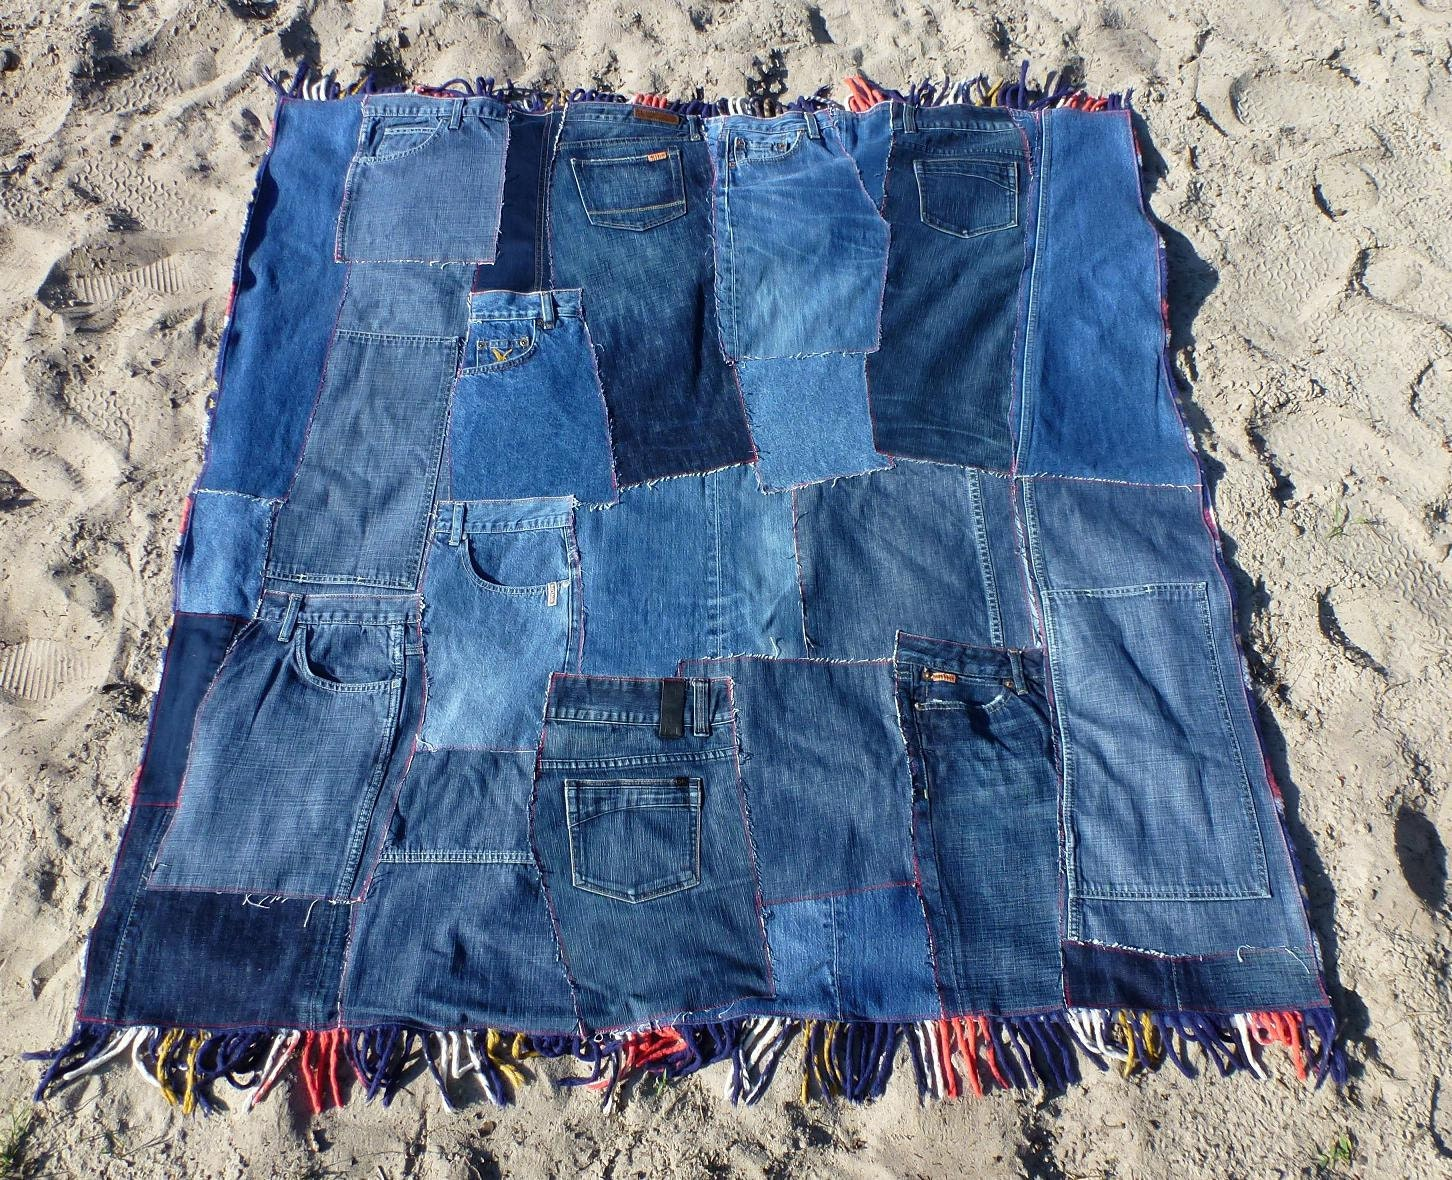 Patchwork Denim Quilt Plaid Picnic Blanket With Fringe By